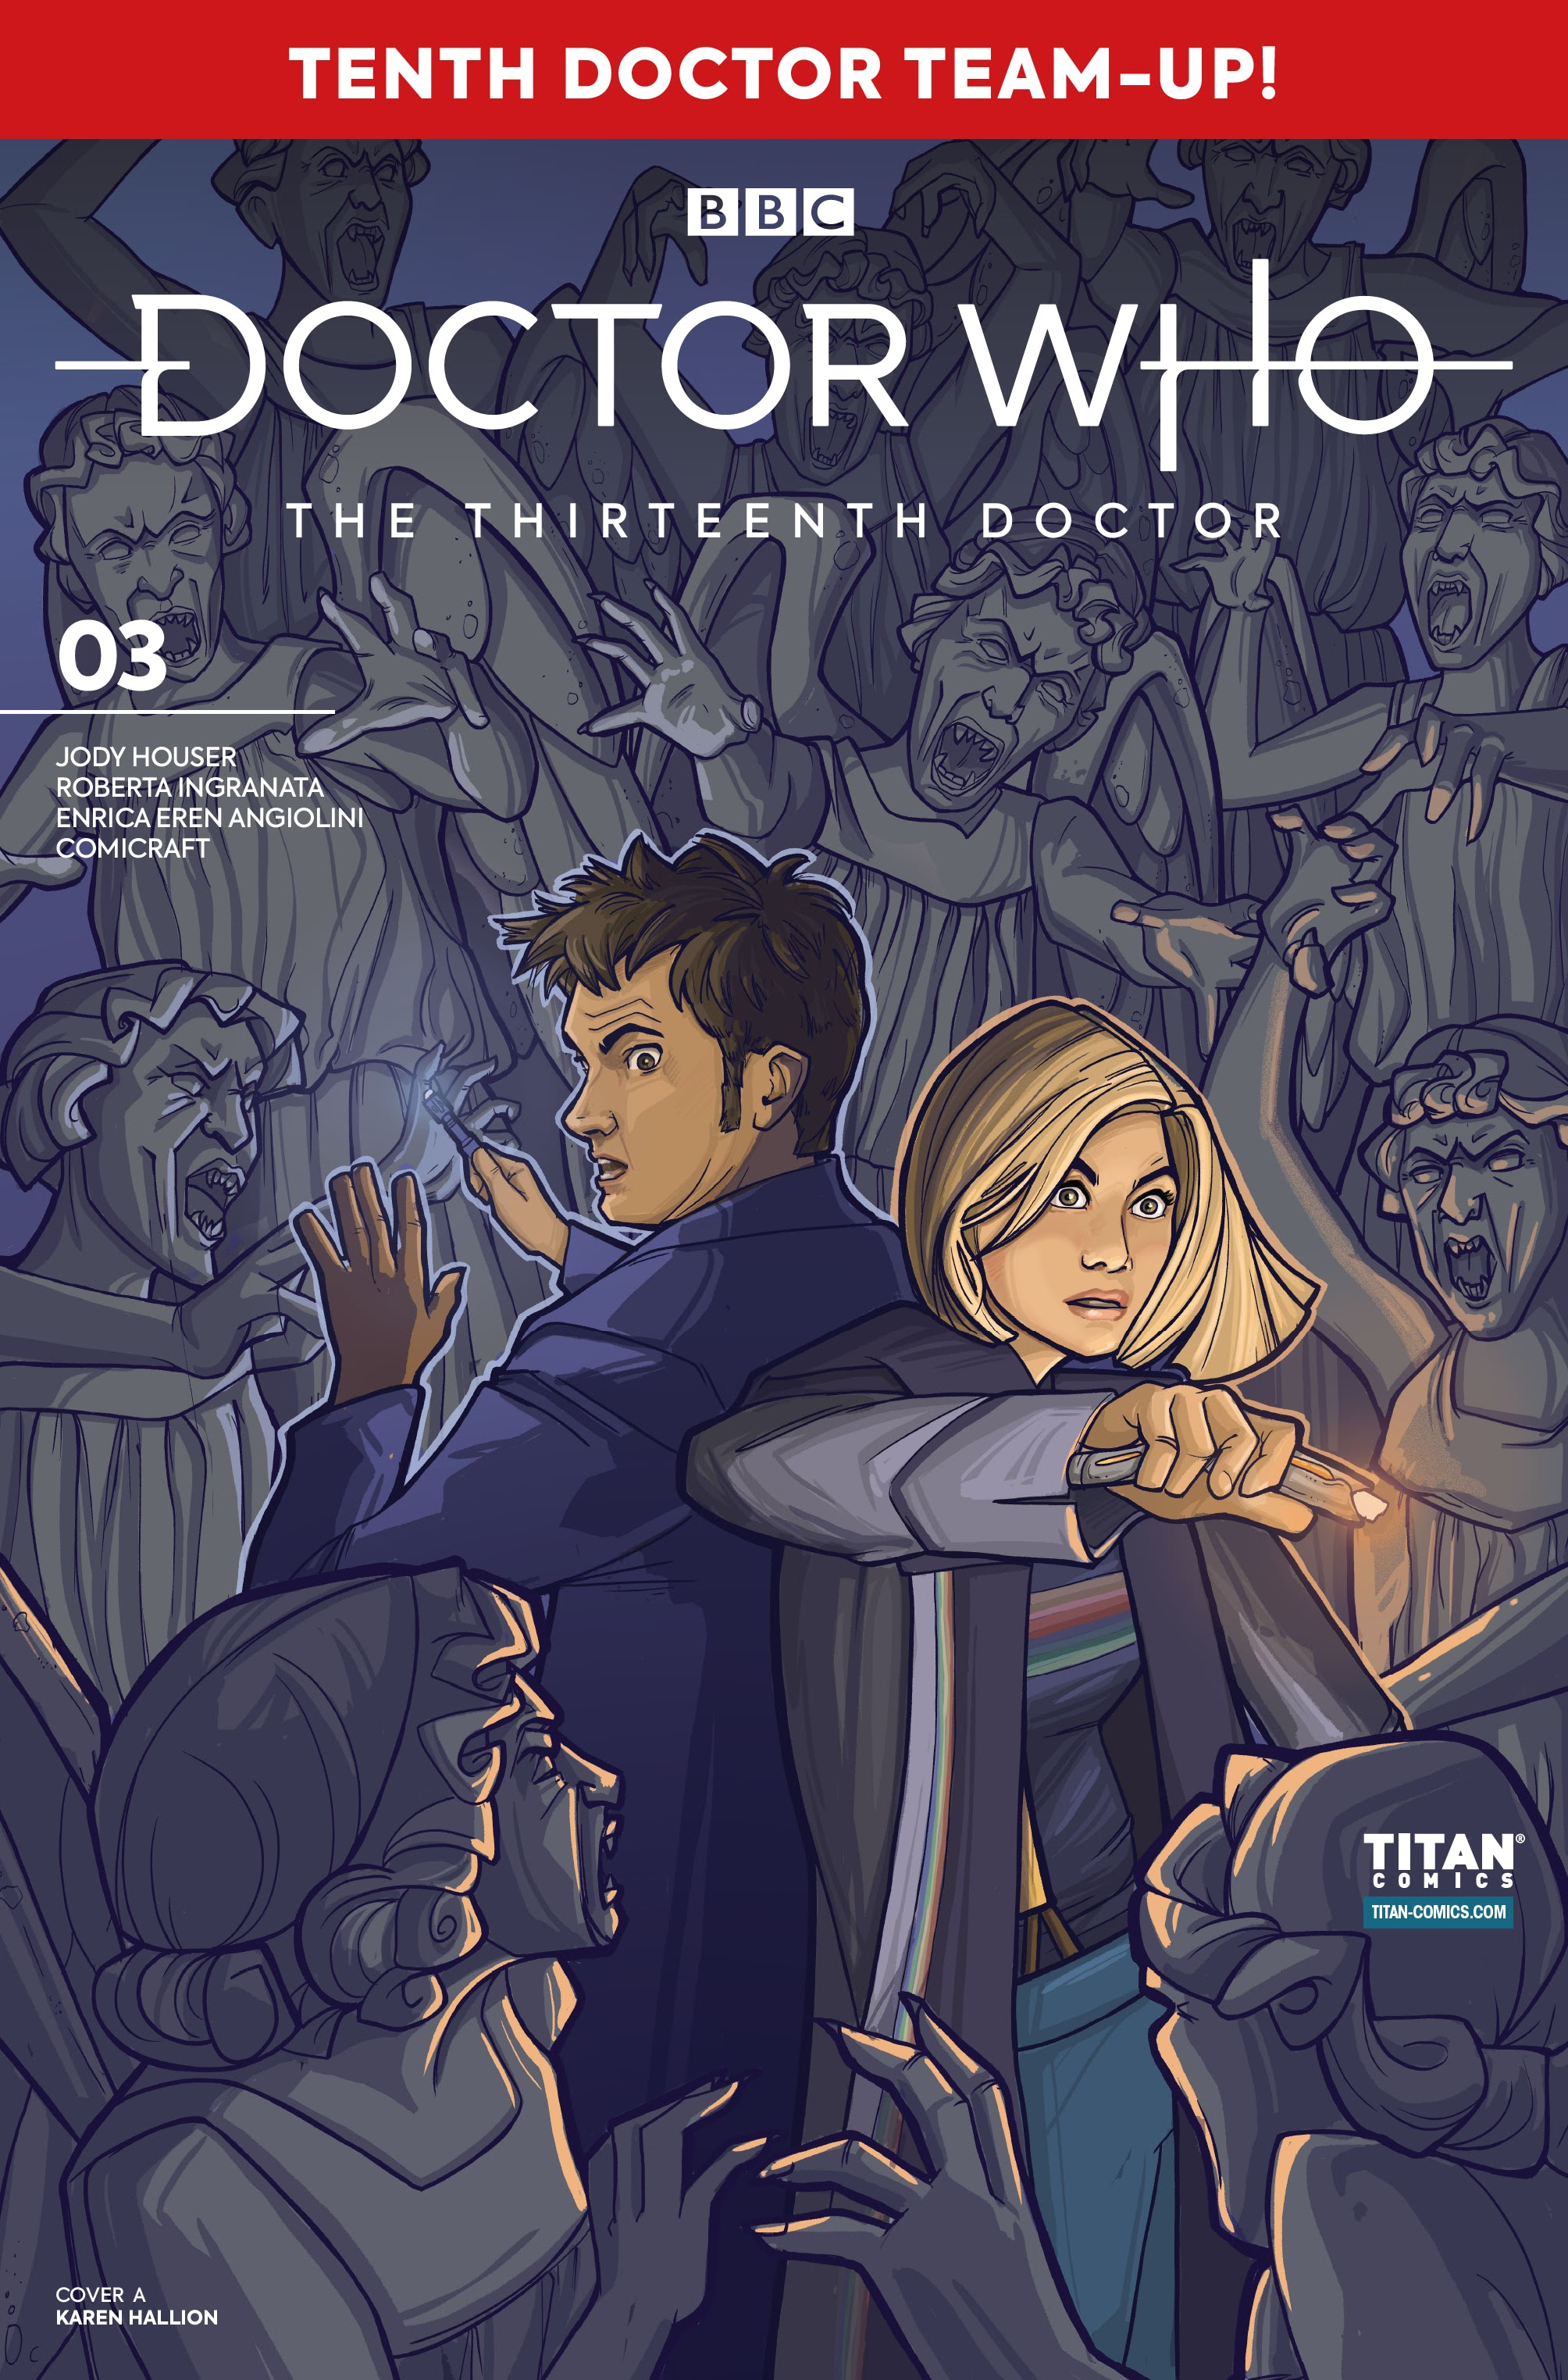 Doctor Who: The Thirteenth Doctor 2-3 Page 1